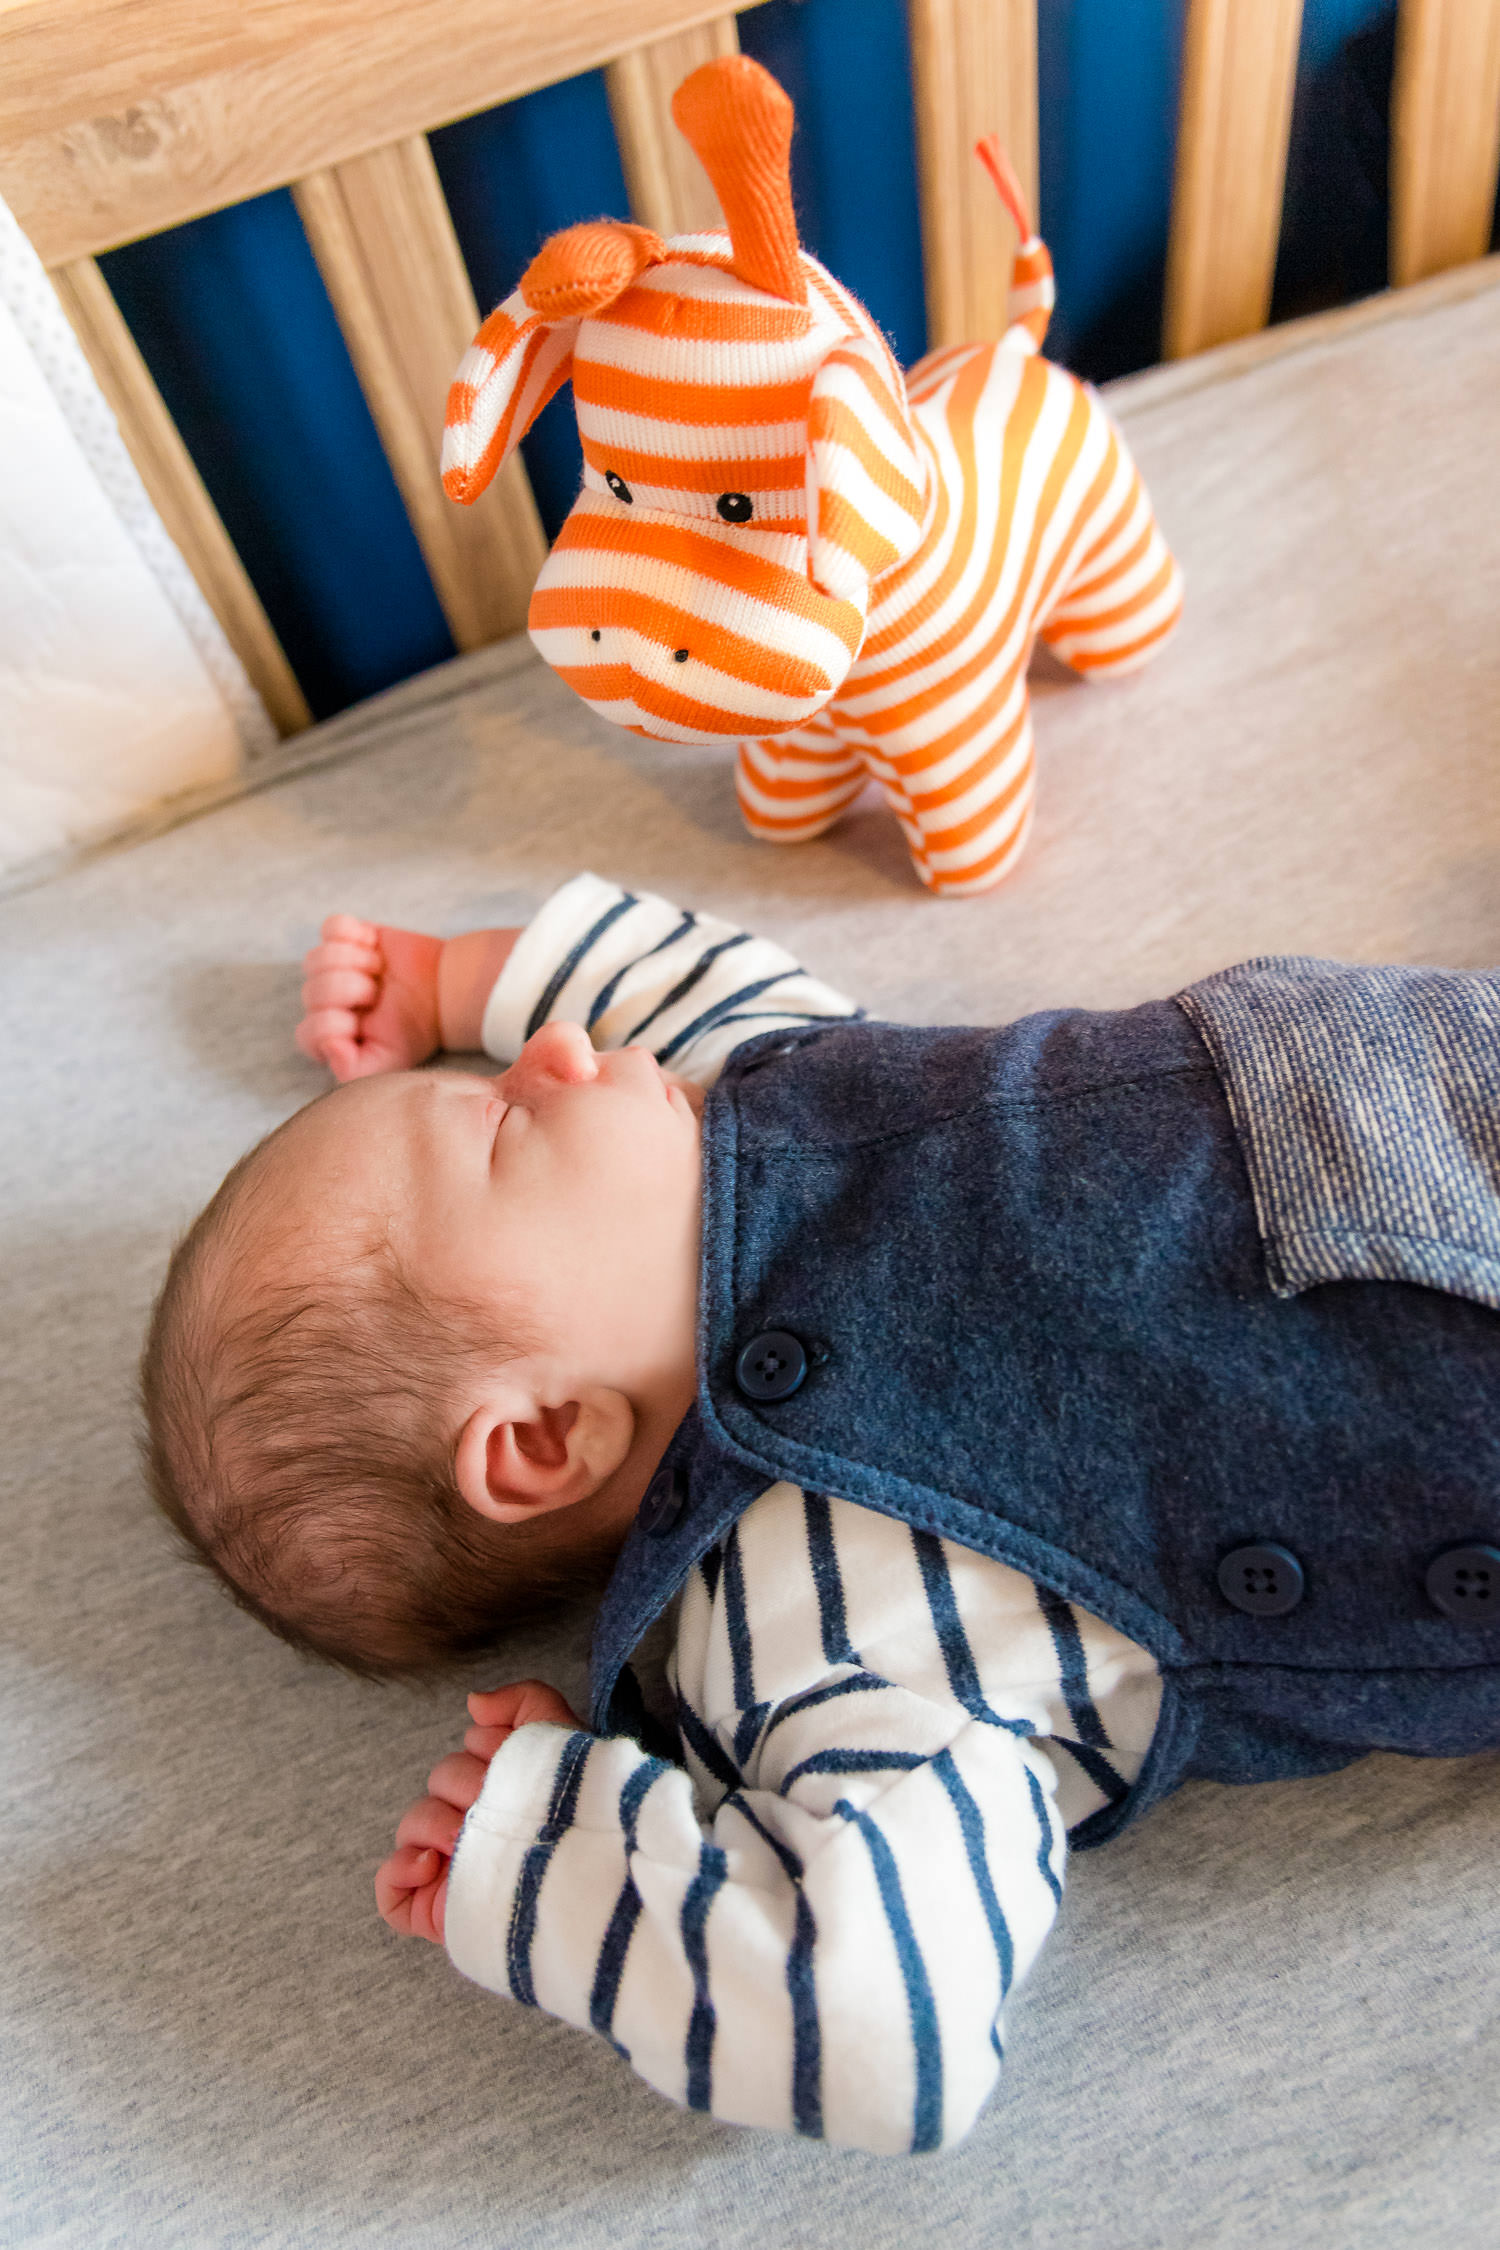 newborn baby asleep in cot with orange stripy toy during maternity shoot